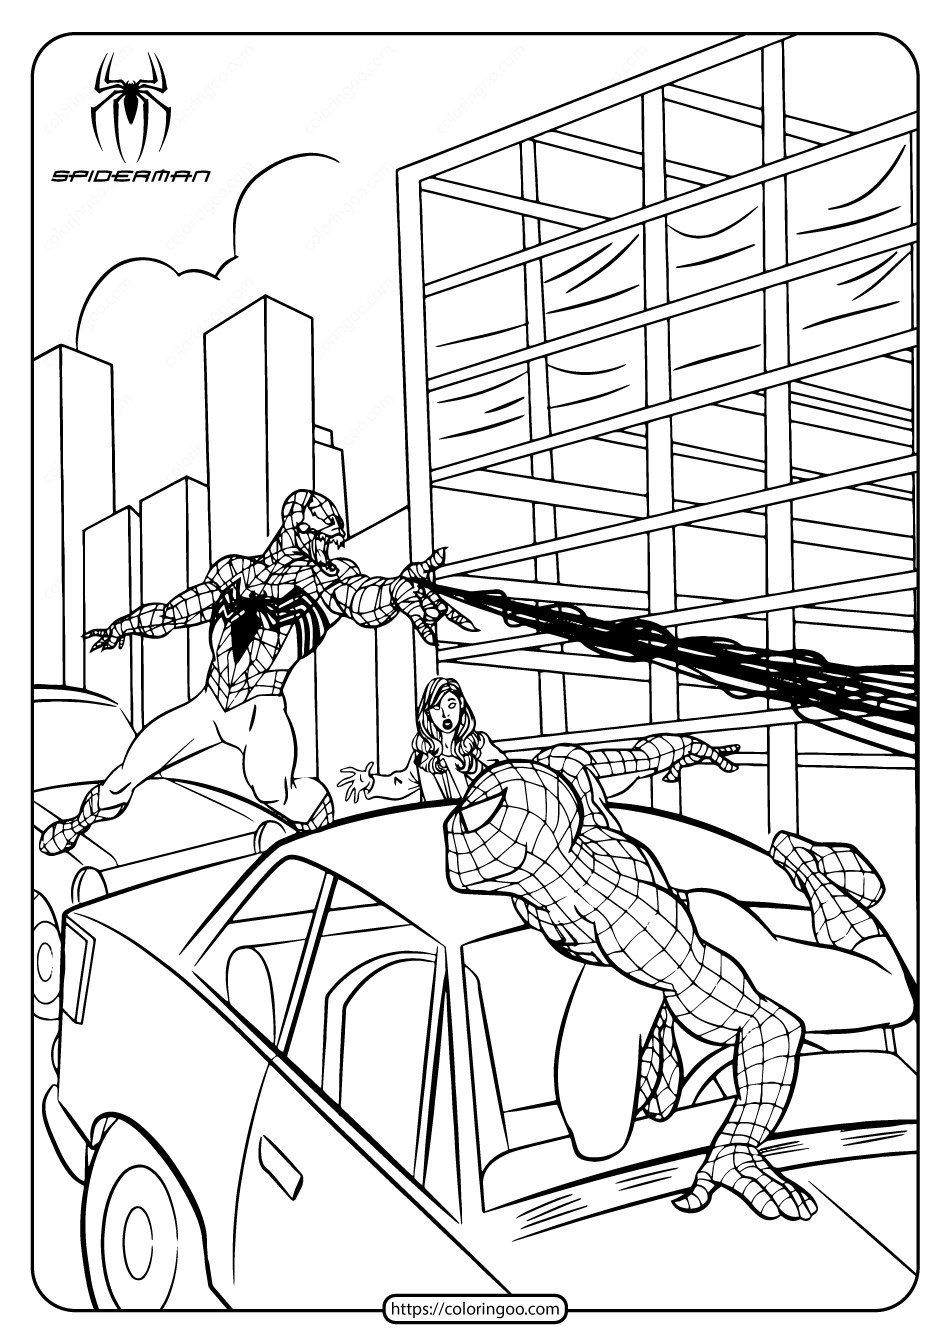 Marvel Black Spiderman Fighting Coloring Page